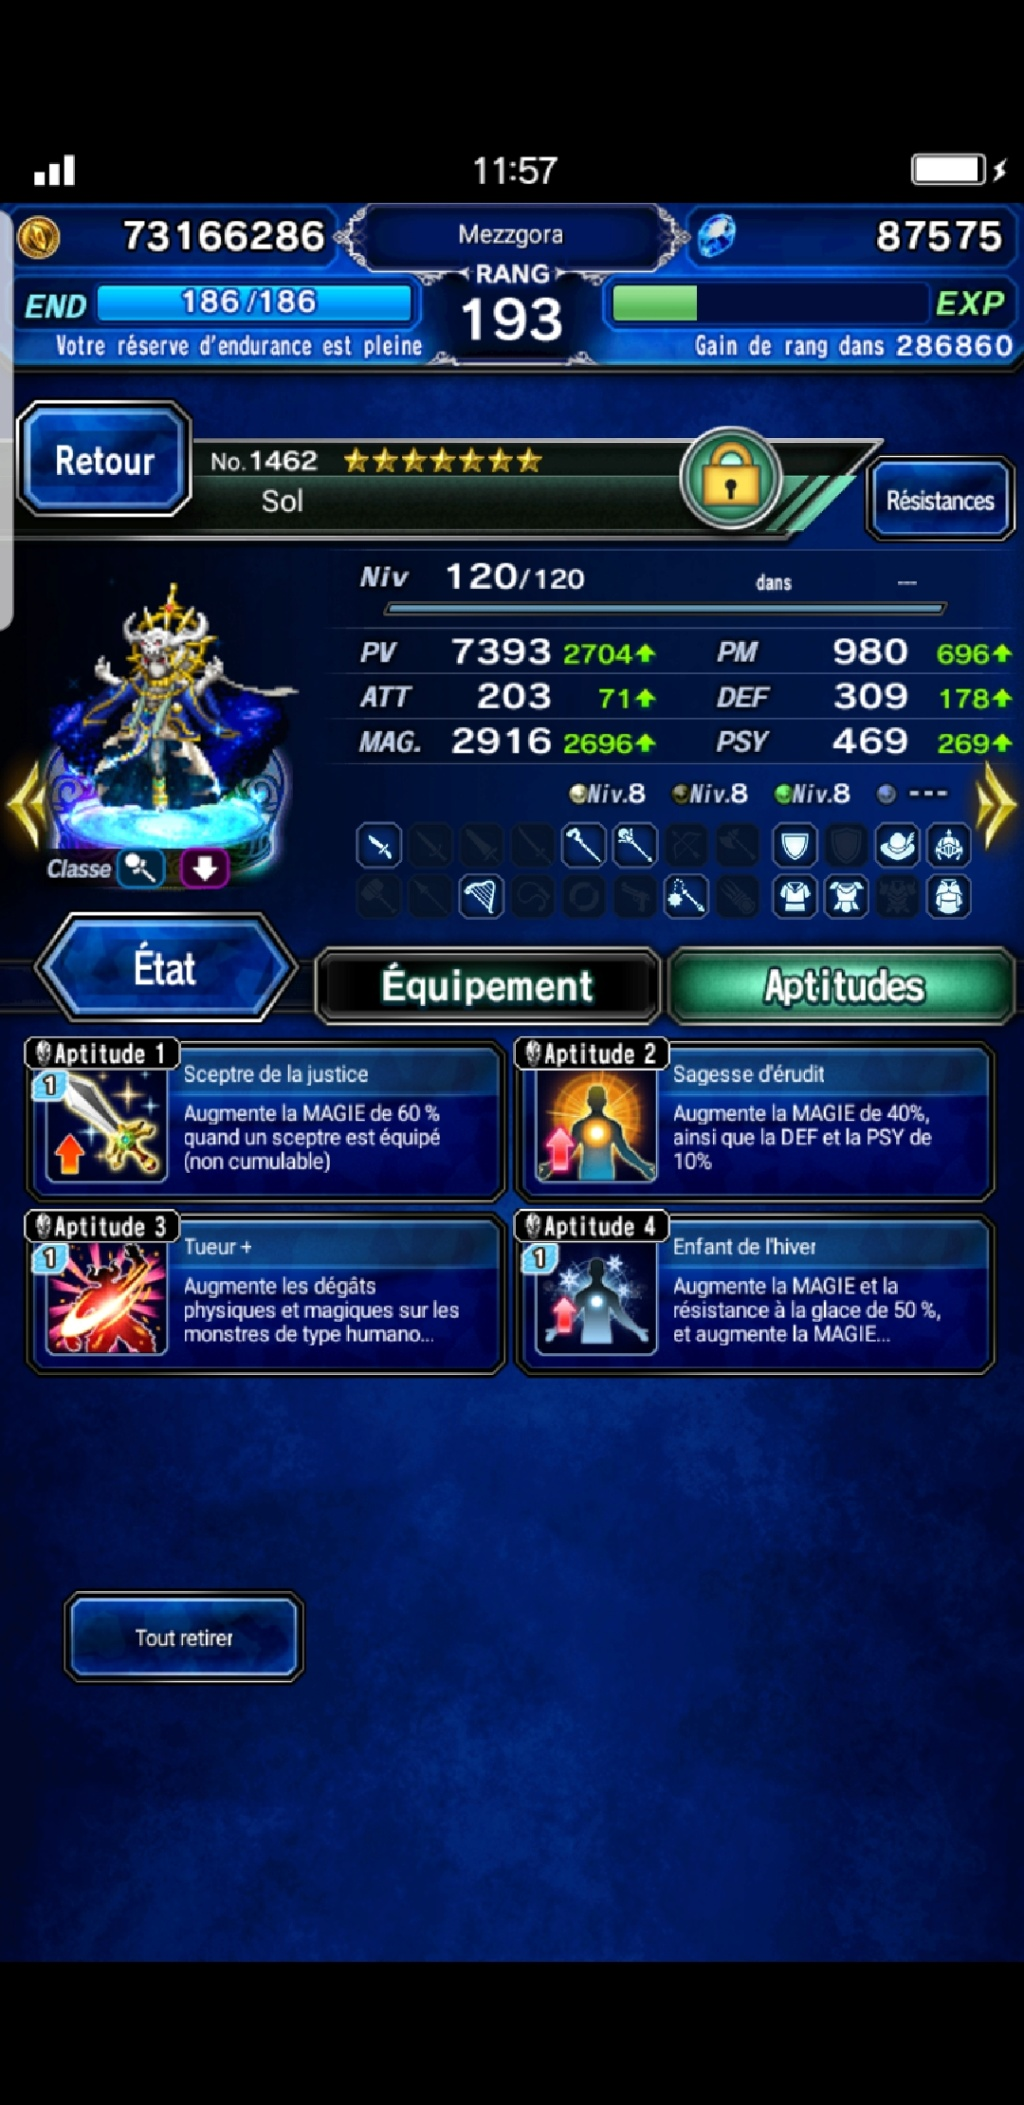 Invocations du moment - FFBE (Sol) - du 13/09 au 27/09/19 - Page 2 Scree381